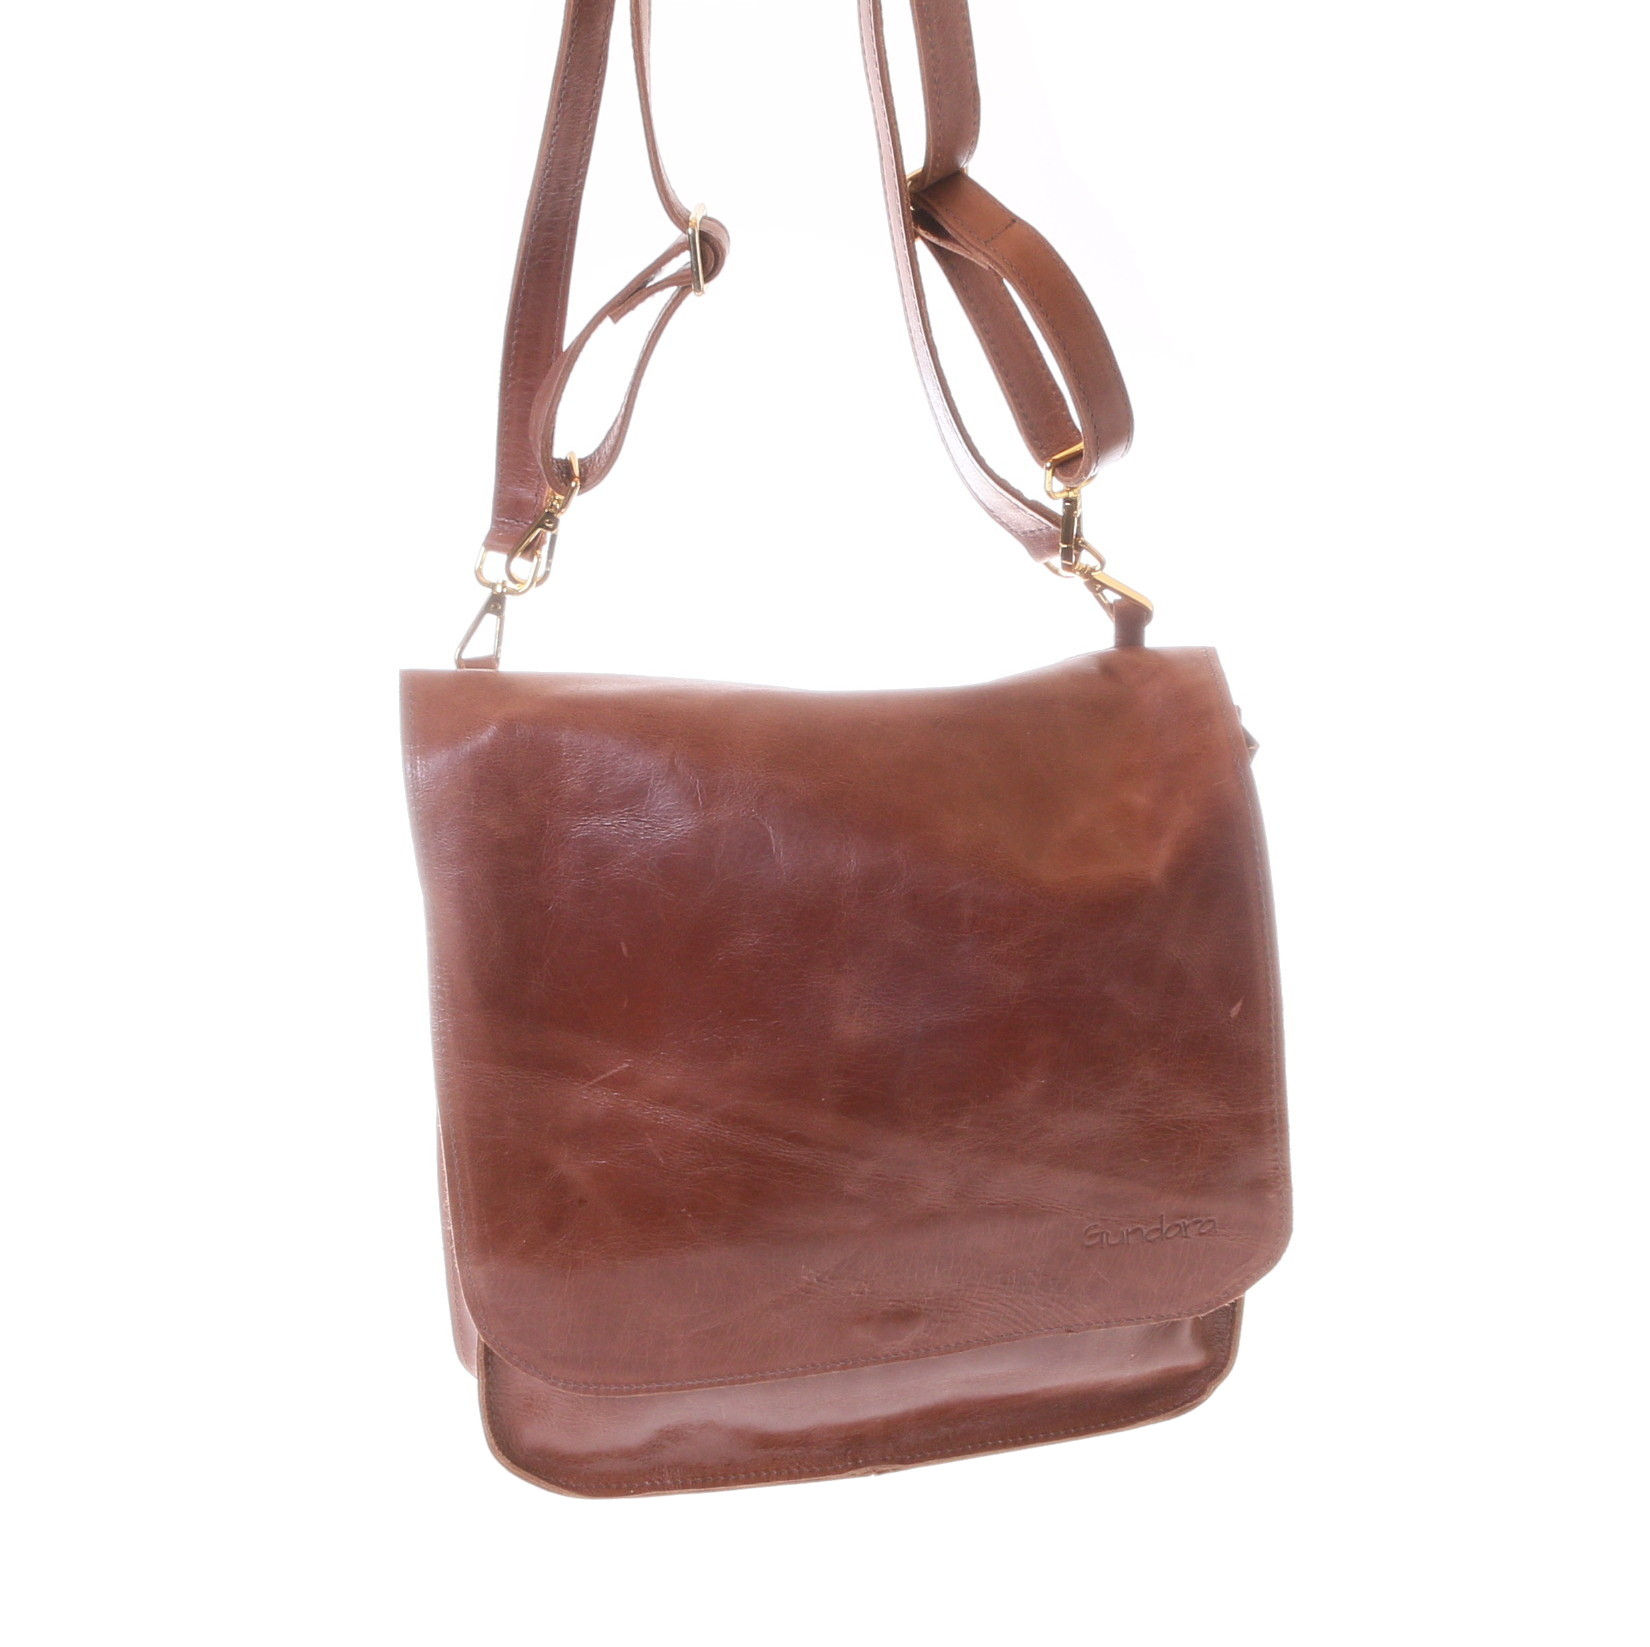 Gundara - fair backpack or handback from genuine cow leather - practical and chic from Ethiopia